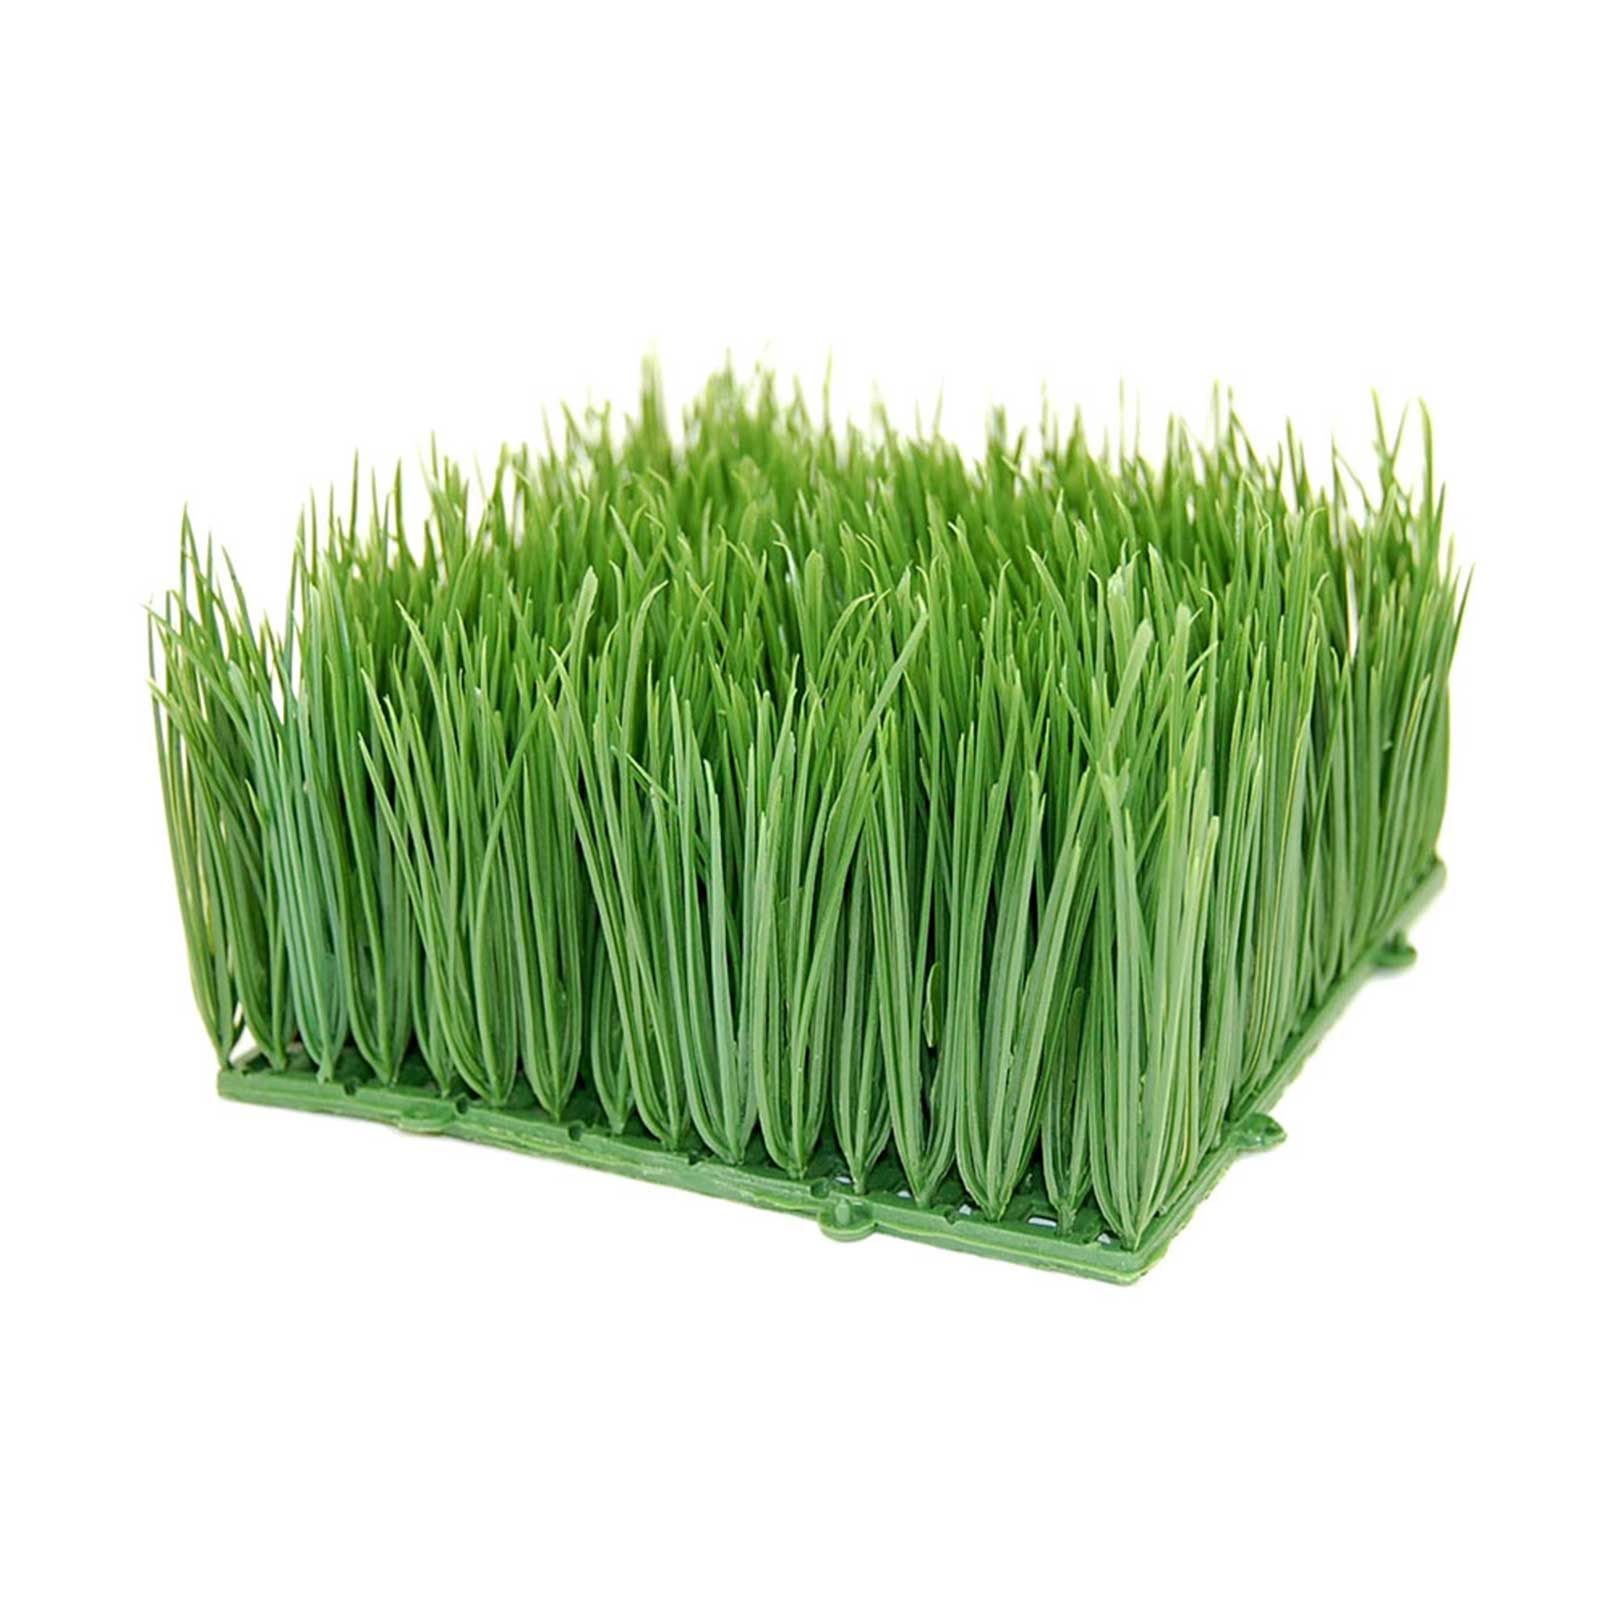 Click here to buy Artificial Wheat Grass- Fake Soft PVC Plastic Decorative Wheatgrass: Ornamantal Flower... by Handy Pantry.